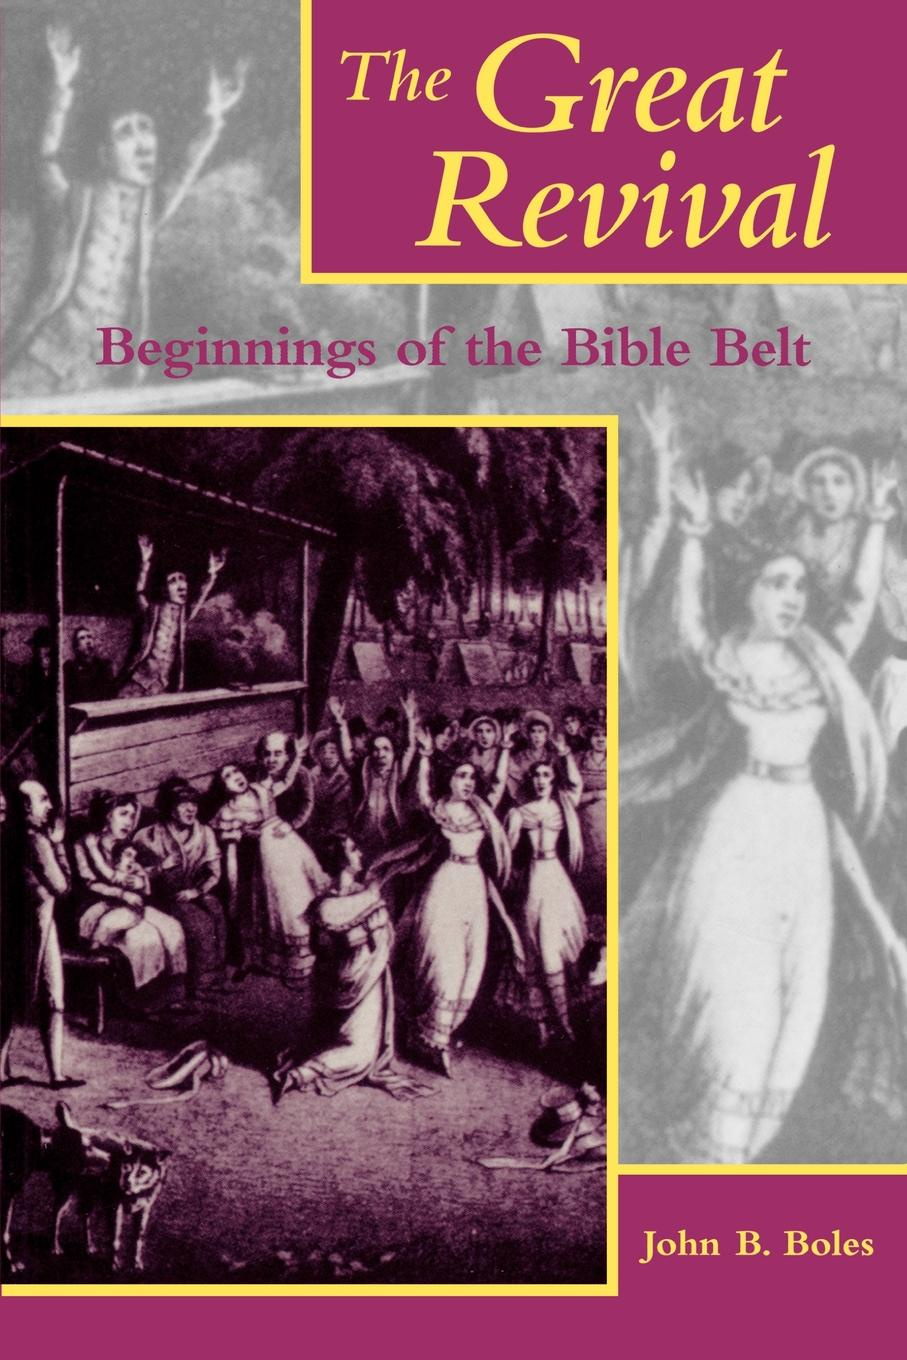 John B. Boles The Great Revival. Beginnings of the Bible Belt